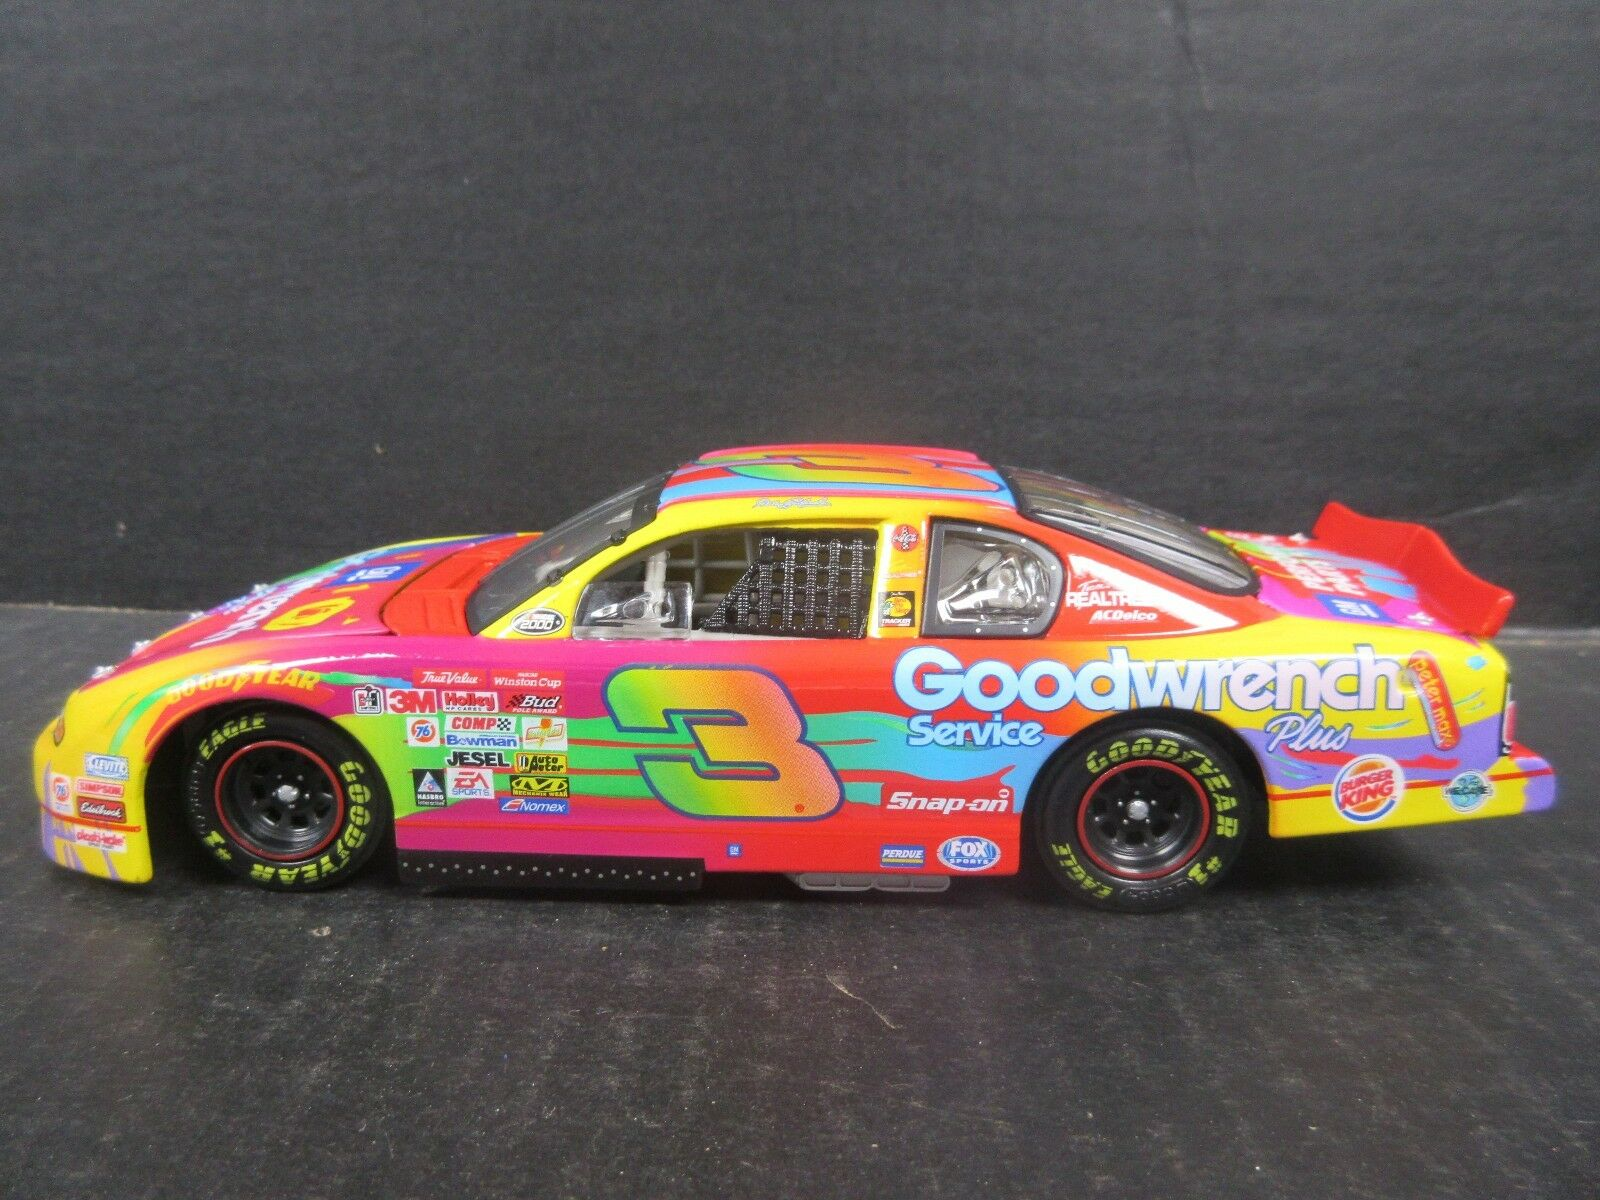 2000 Wirkung Goodwrench Peter Max   3 Dale Earnhardt -- 1 24th scale